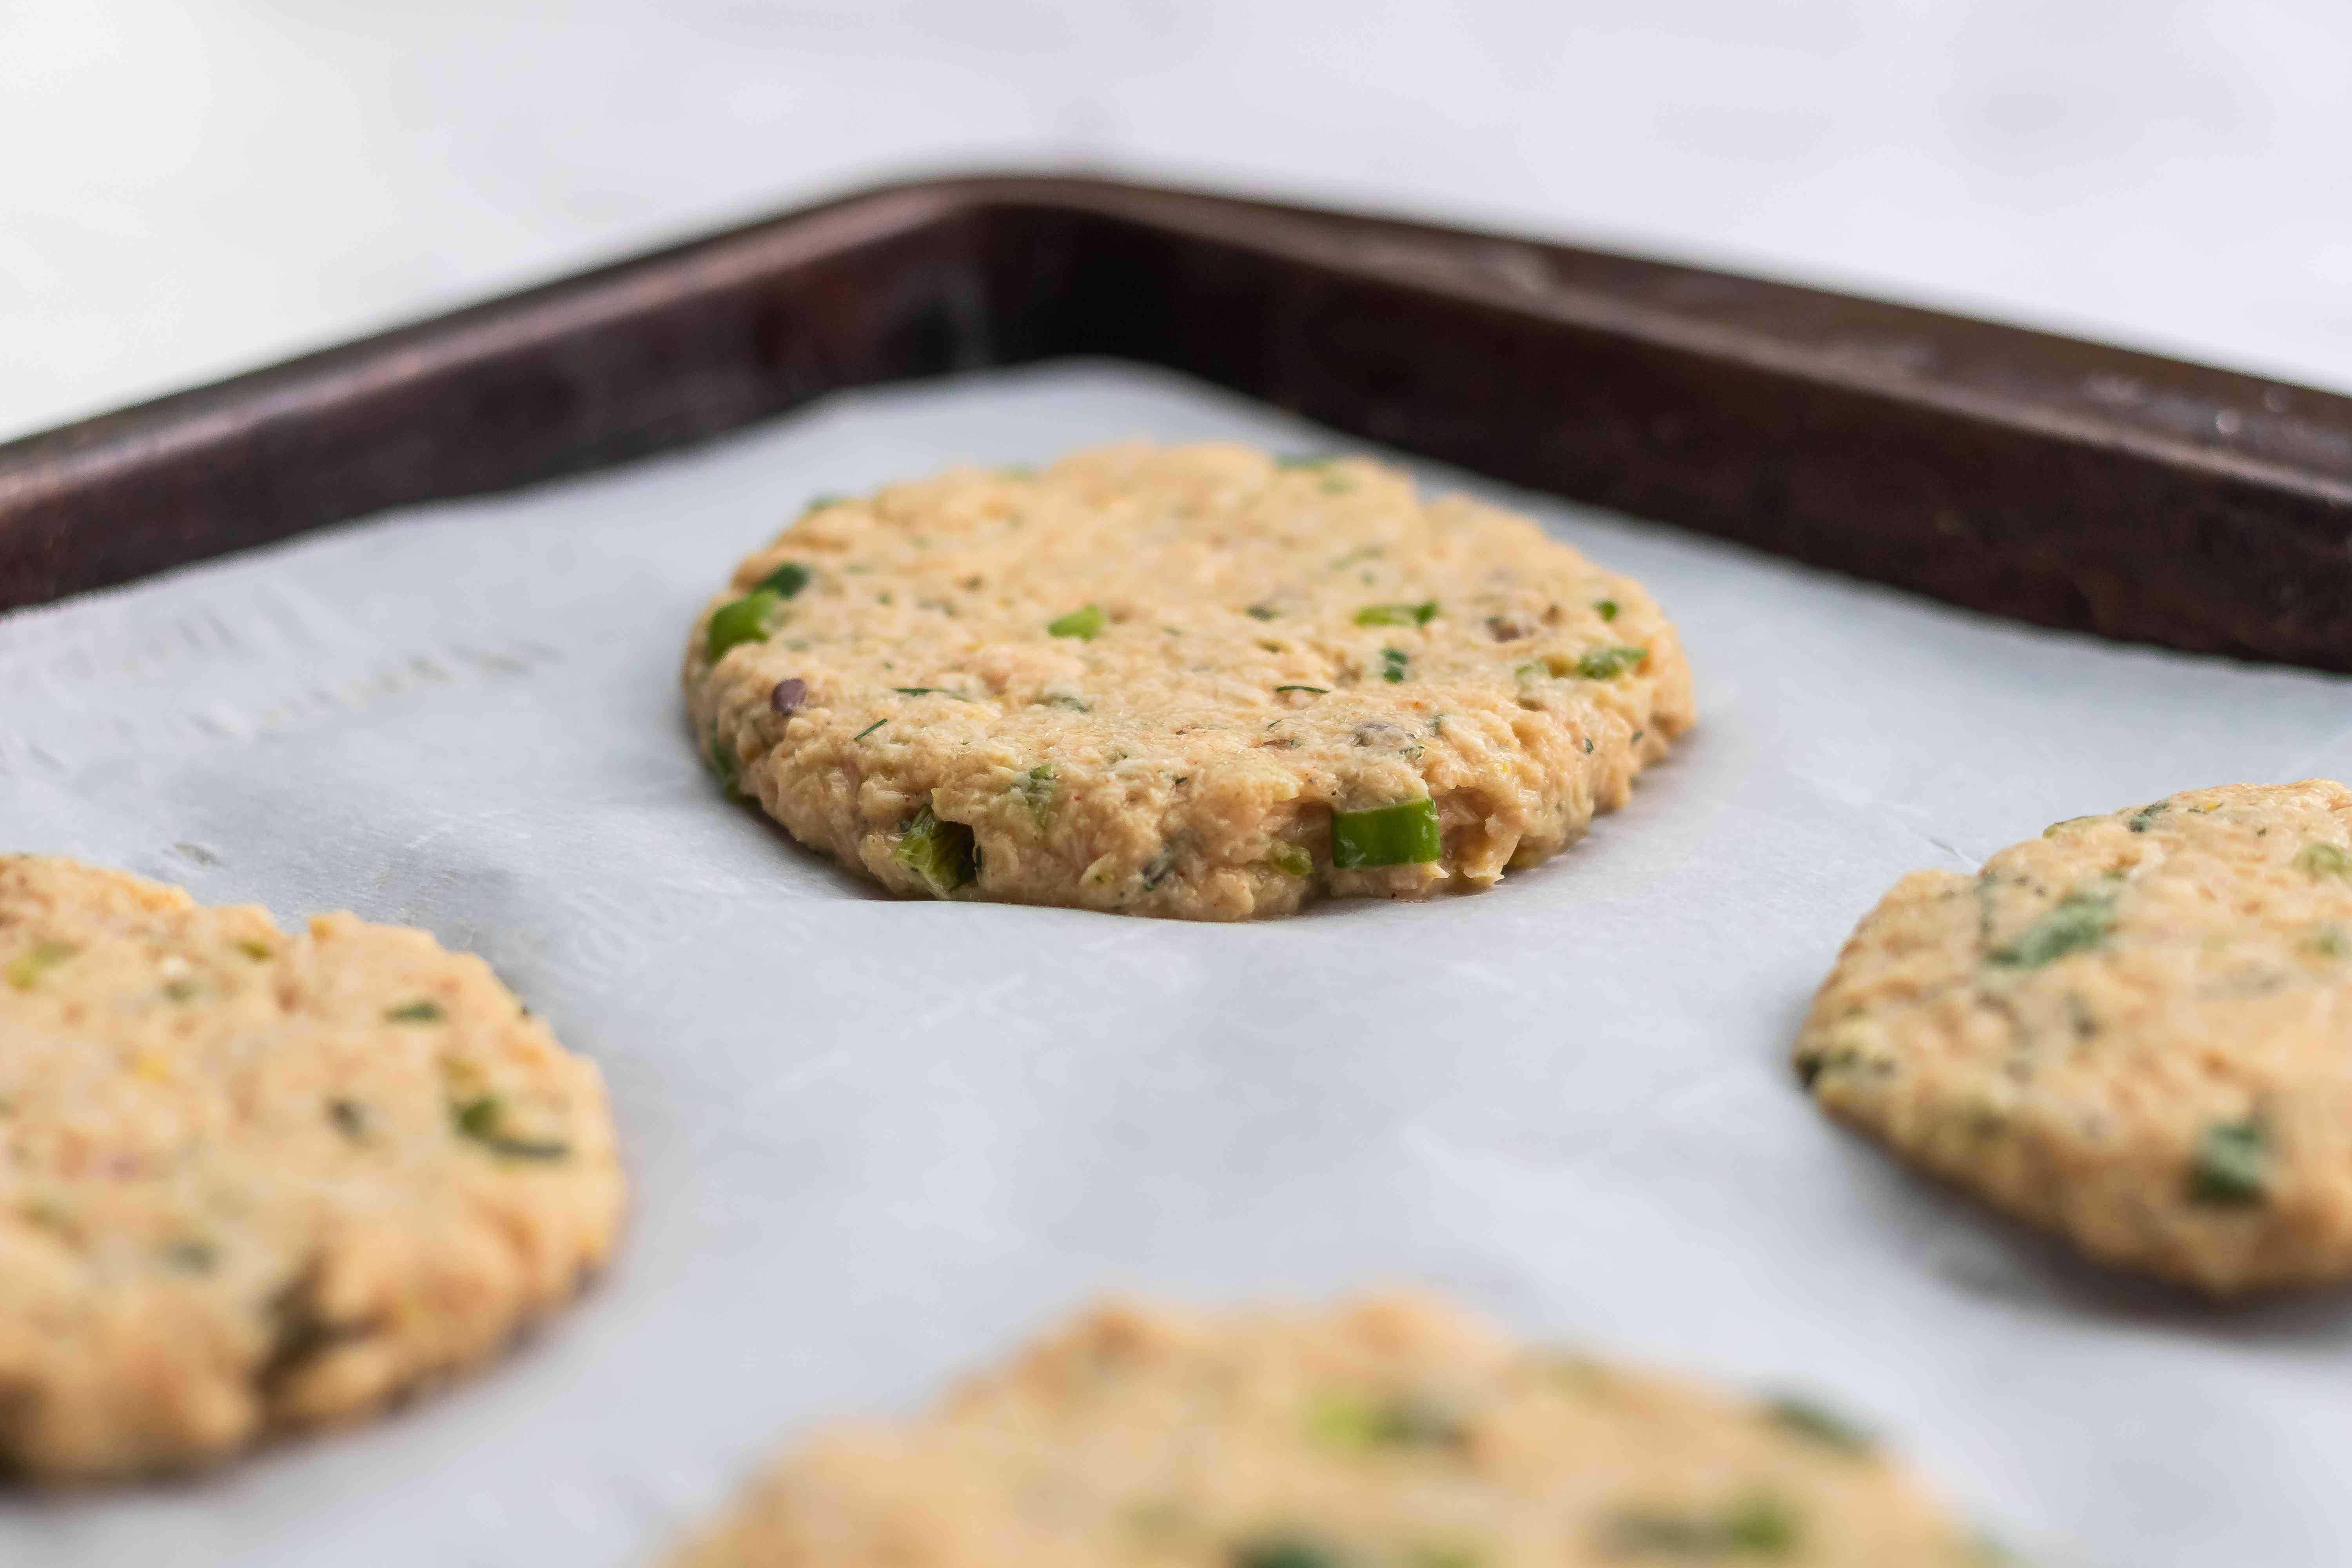 How to make salmon cakes and portioned on parchment paper.